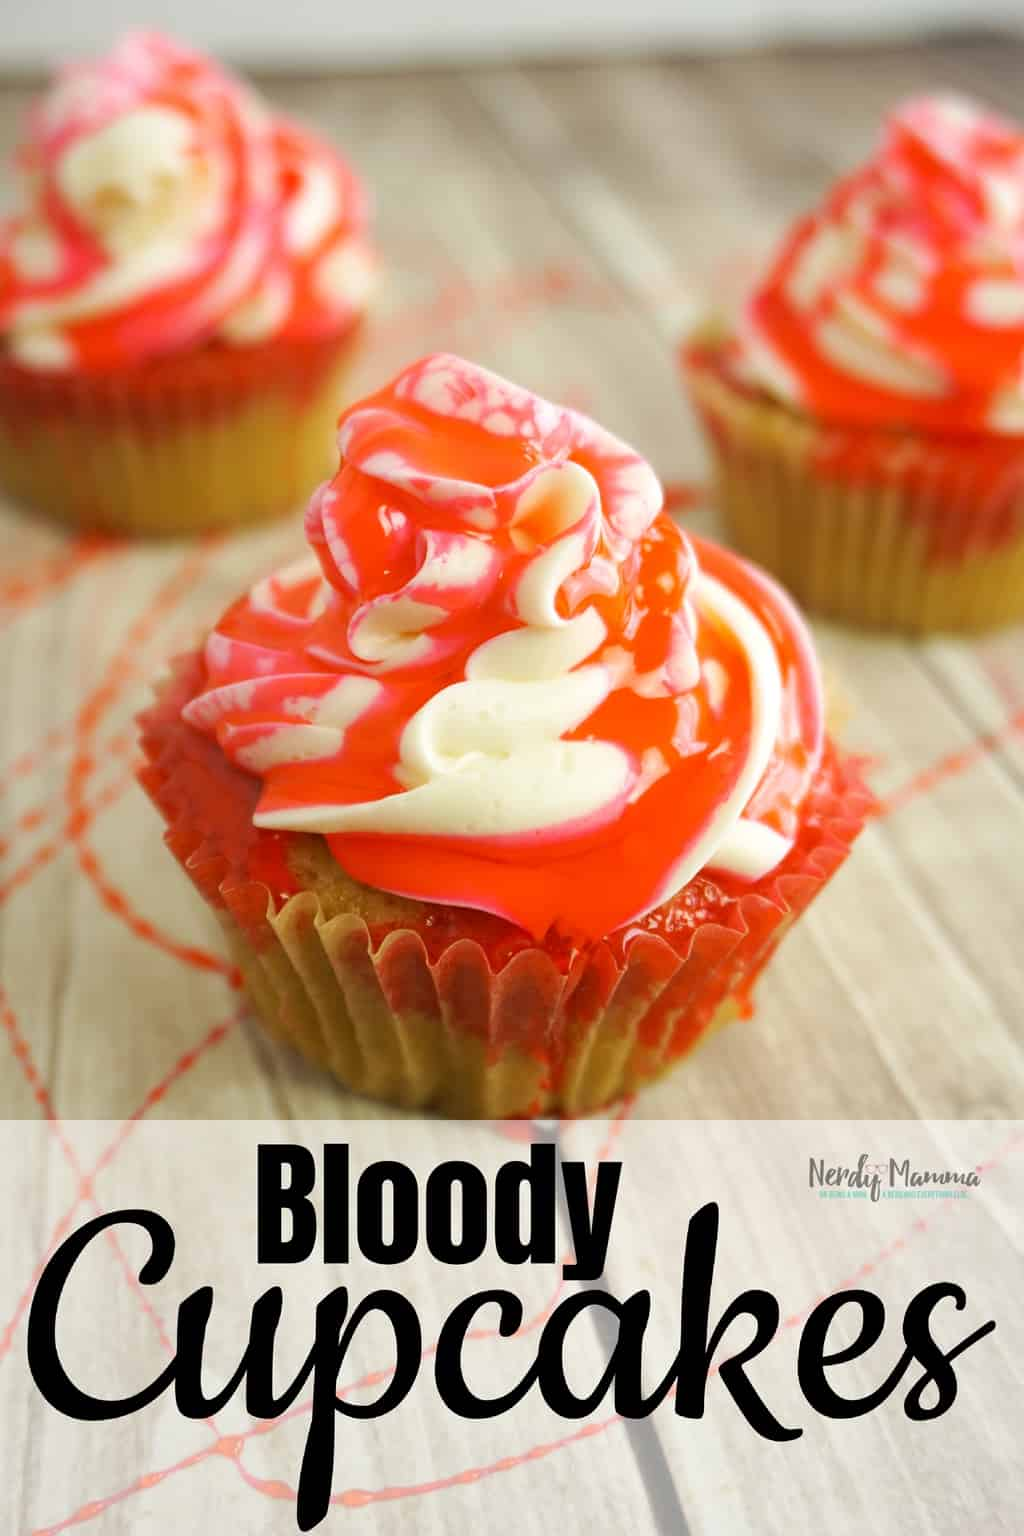 Despite the fact that's its summer, I'm making Bloody Cupcakesbecause I just really miss Halloween. Using fake edible blood, a yummy cupcake and a spoon, I think I succeeded nicely! #nerdymammablog #halloweencupcakes #bloodycupcakes #halloweencupcakerecipe